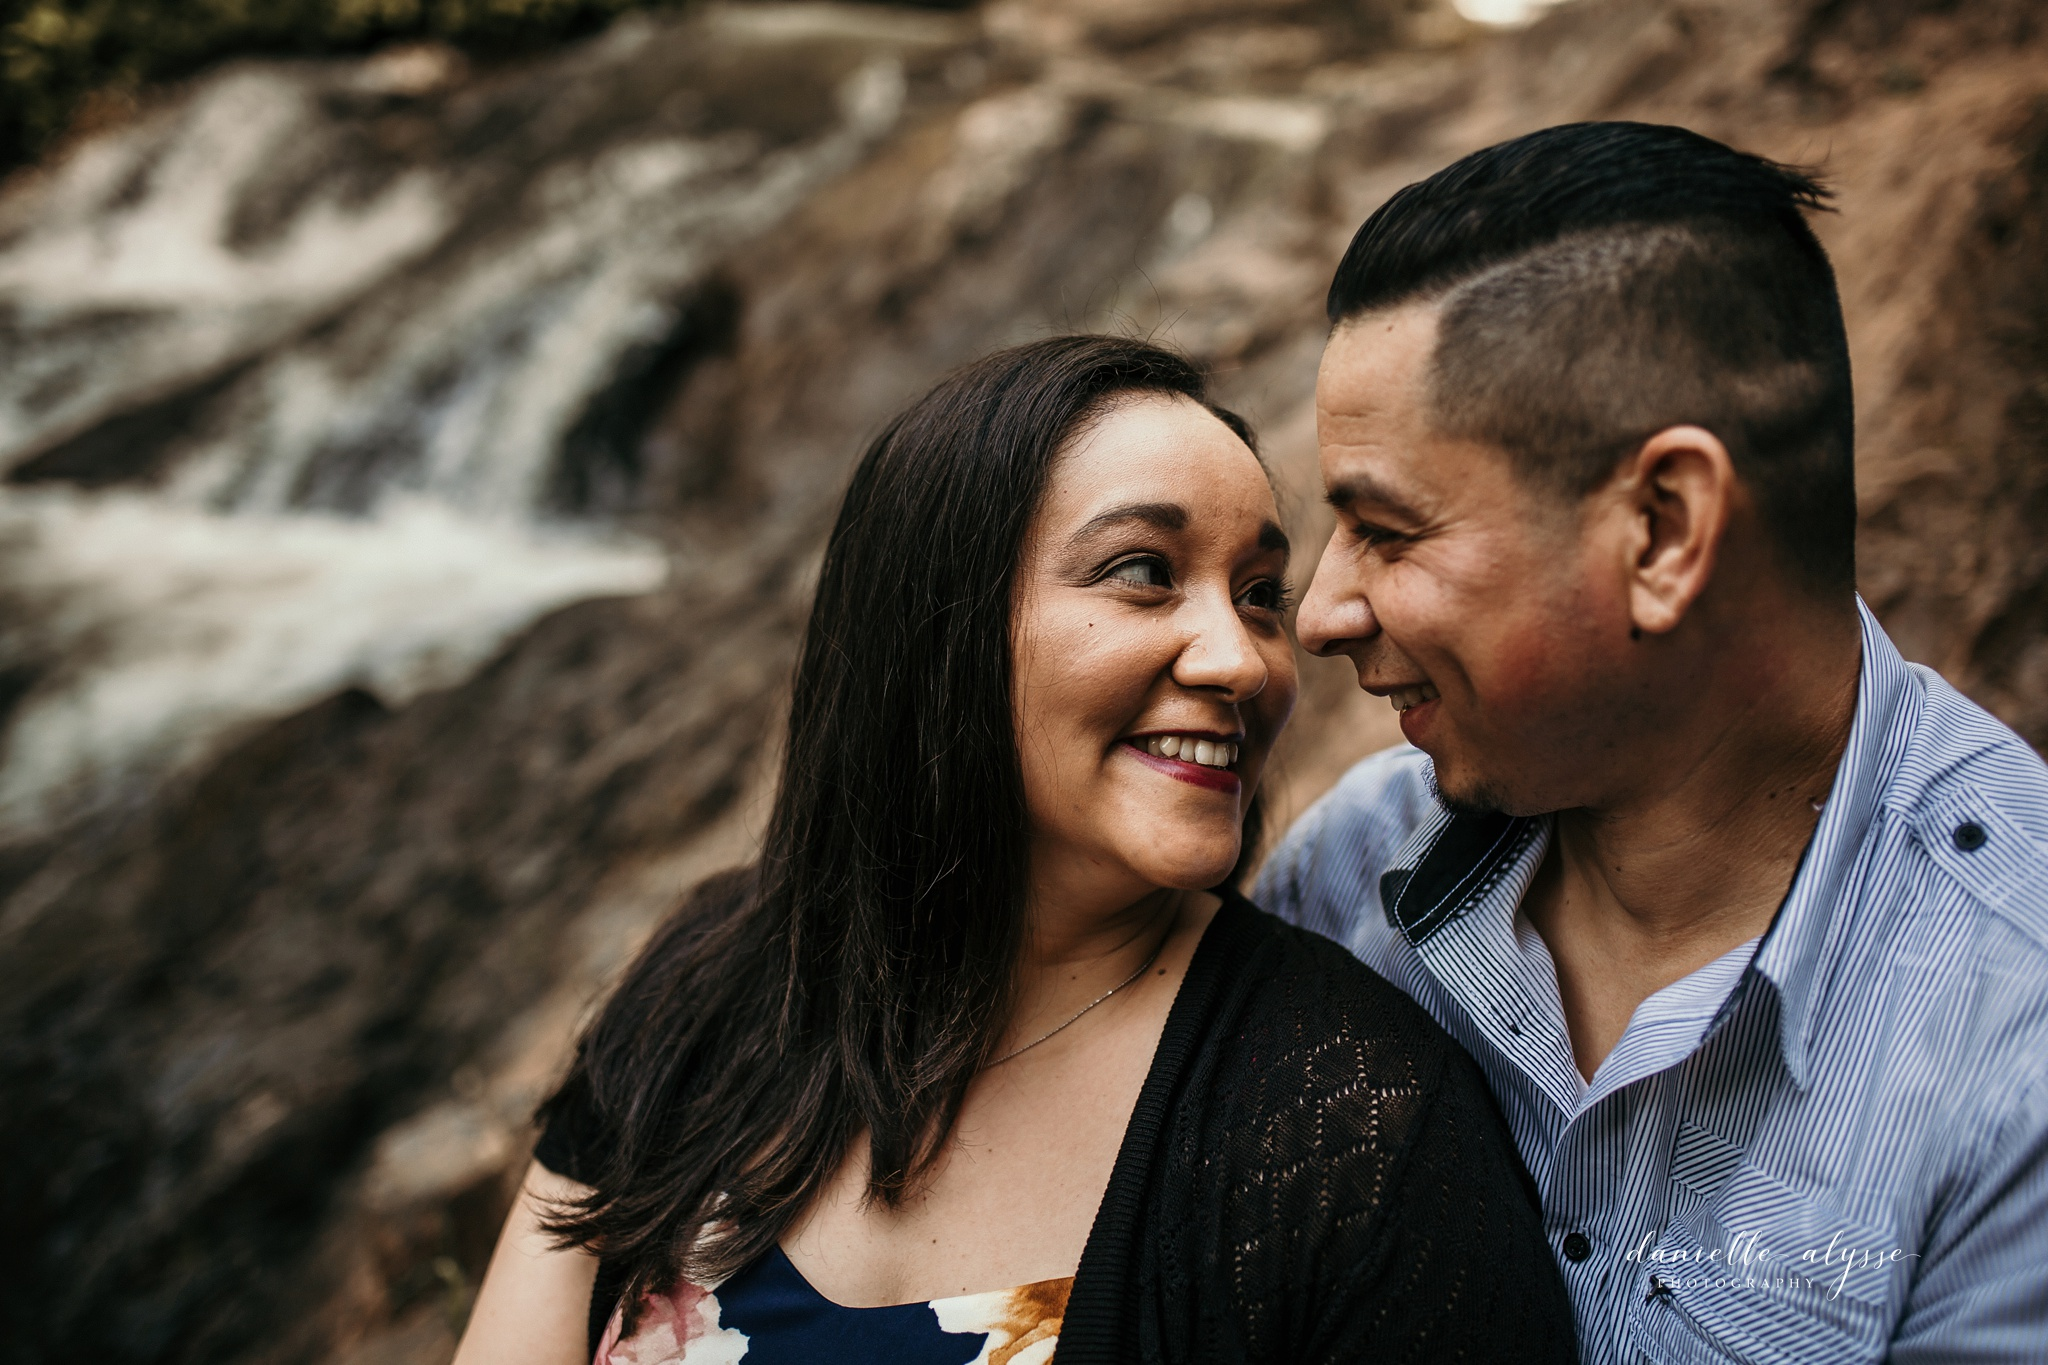 180425_engagement_monica_auburn_water_falls_auburn_danielle_alysse_photography_sacramento_photographer_blog_16_WEB.jpg